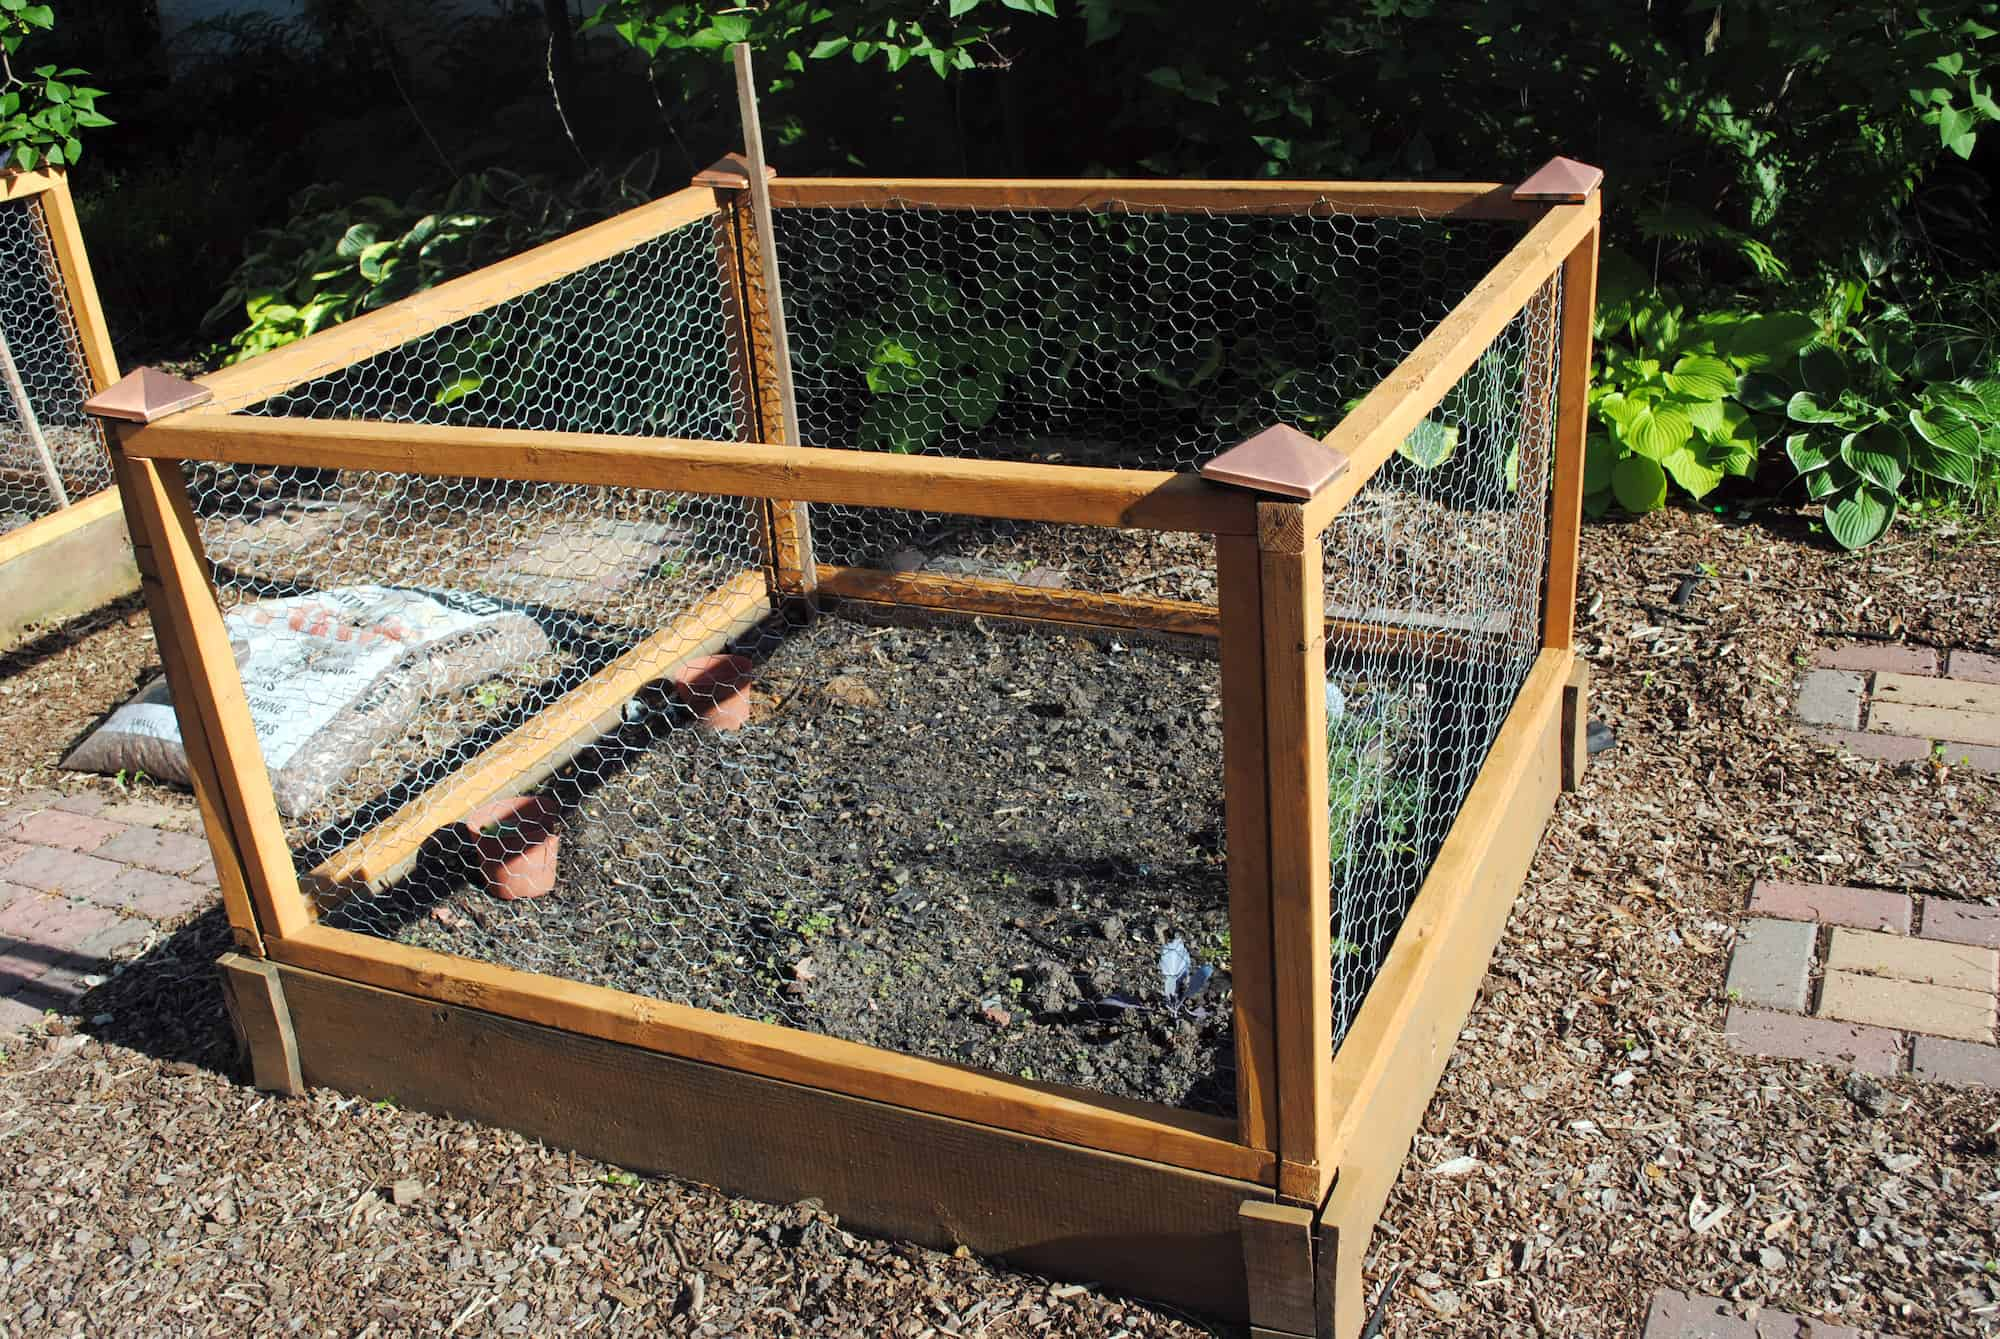 Consider make a low garden fence to keep critters out